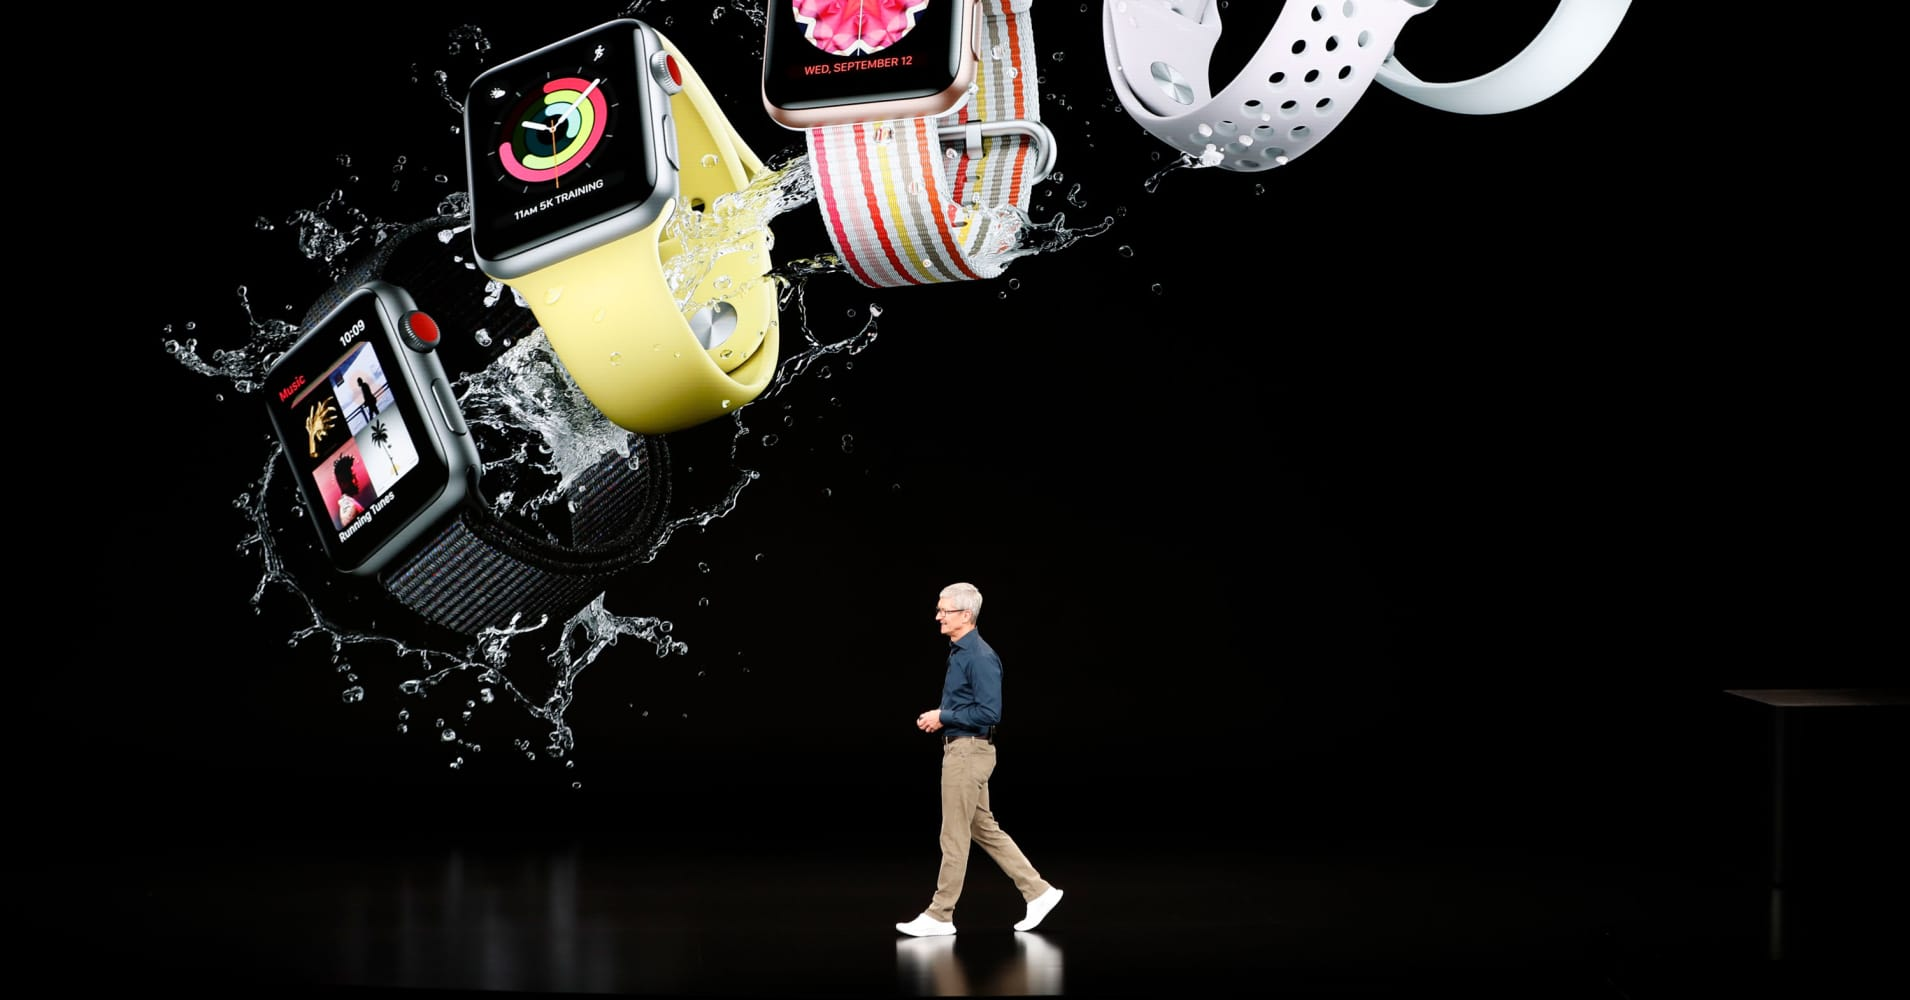 New Apple Watch is luring baby boomers by focusing on health and wellness